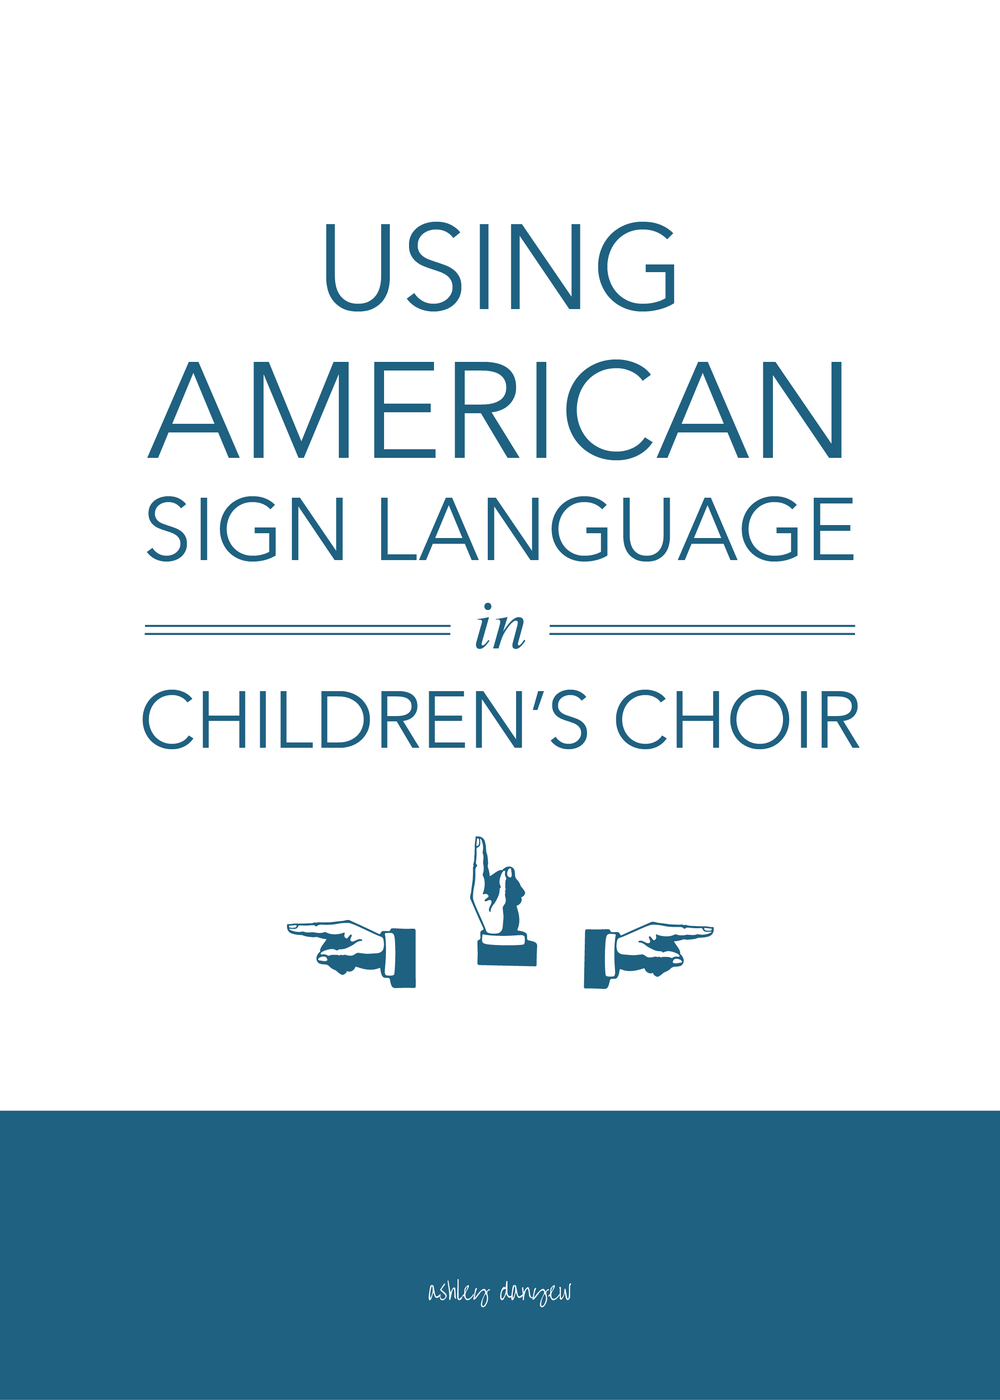 Copy of Using American Sign Language in Children's Choir